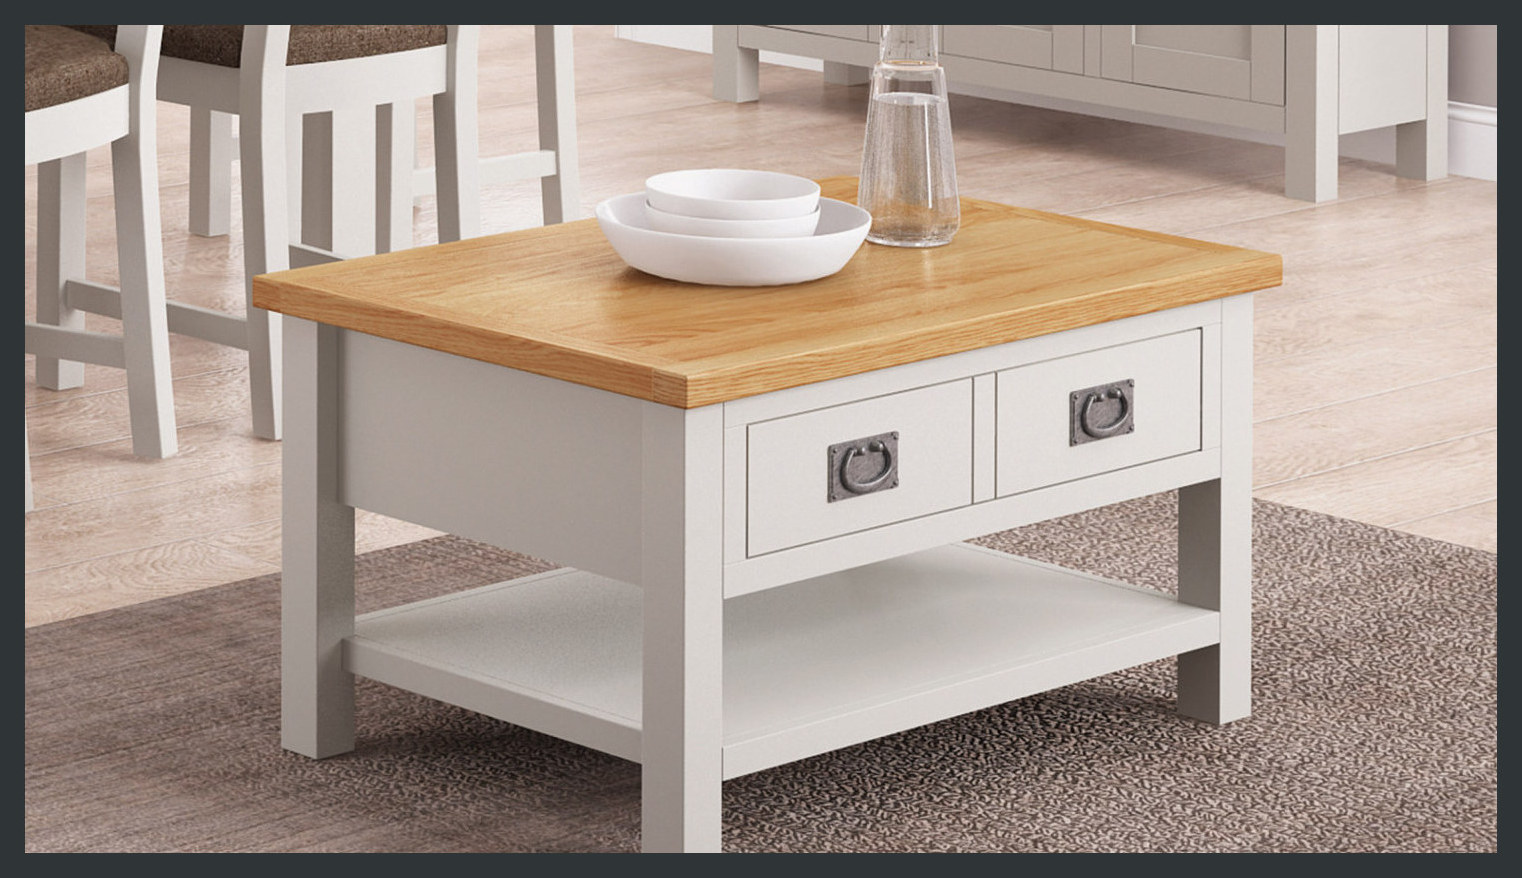 Rustique Home Florence Painted and Natural 100% Solid Oak coffee table. Two colors, main body is painted satin grey and the top is natural oak color. There are two drawers on the top and a shelf at the bottom for magazines.